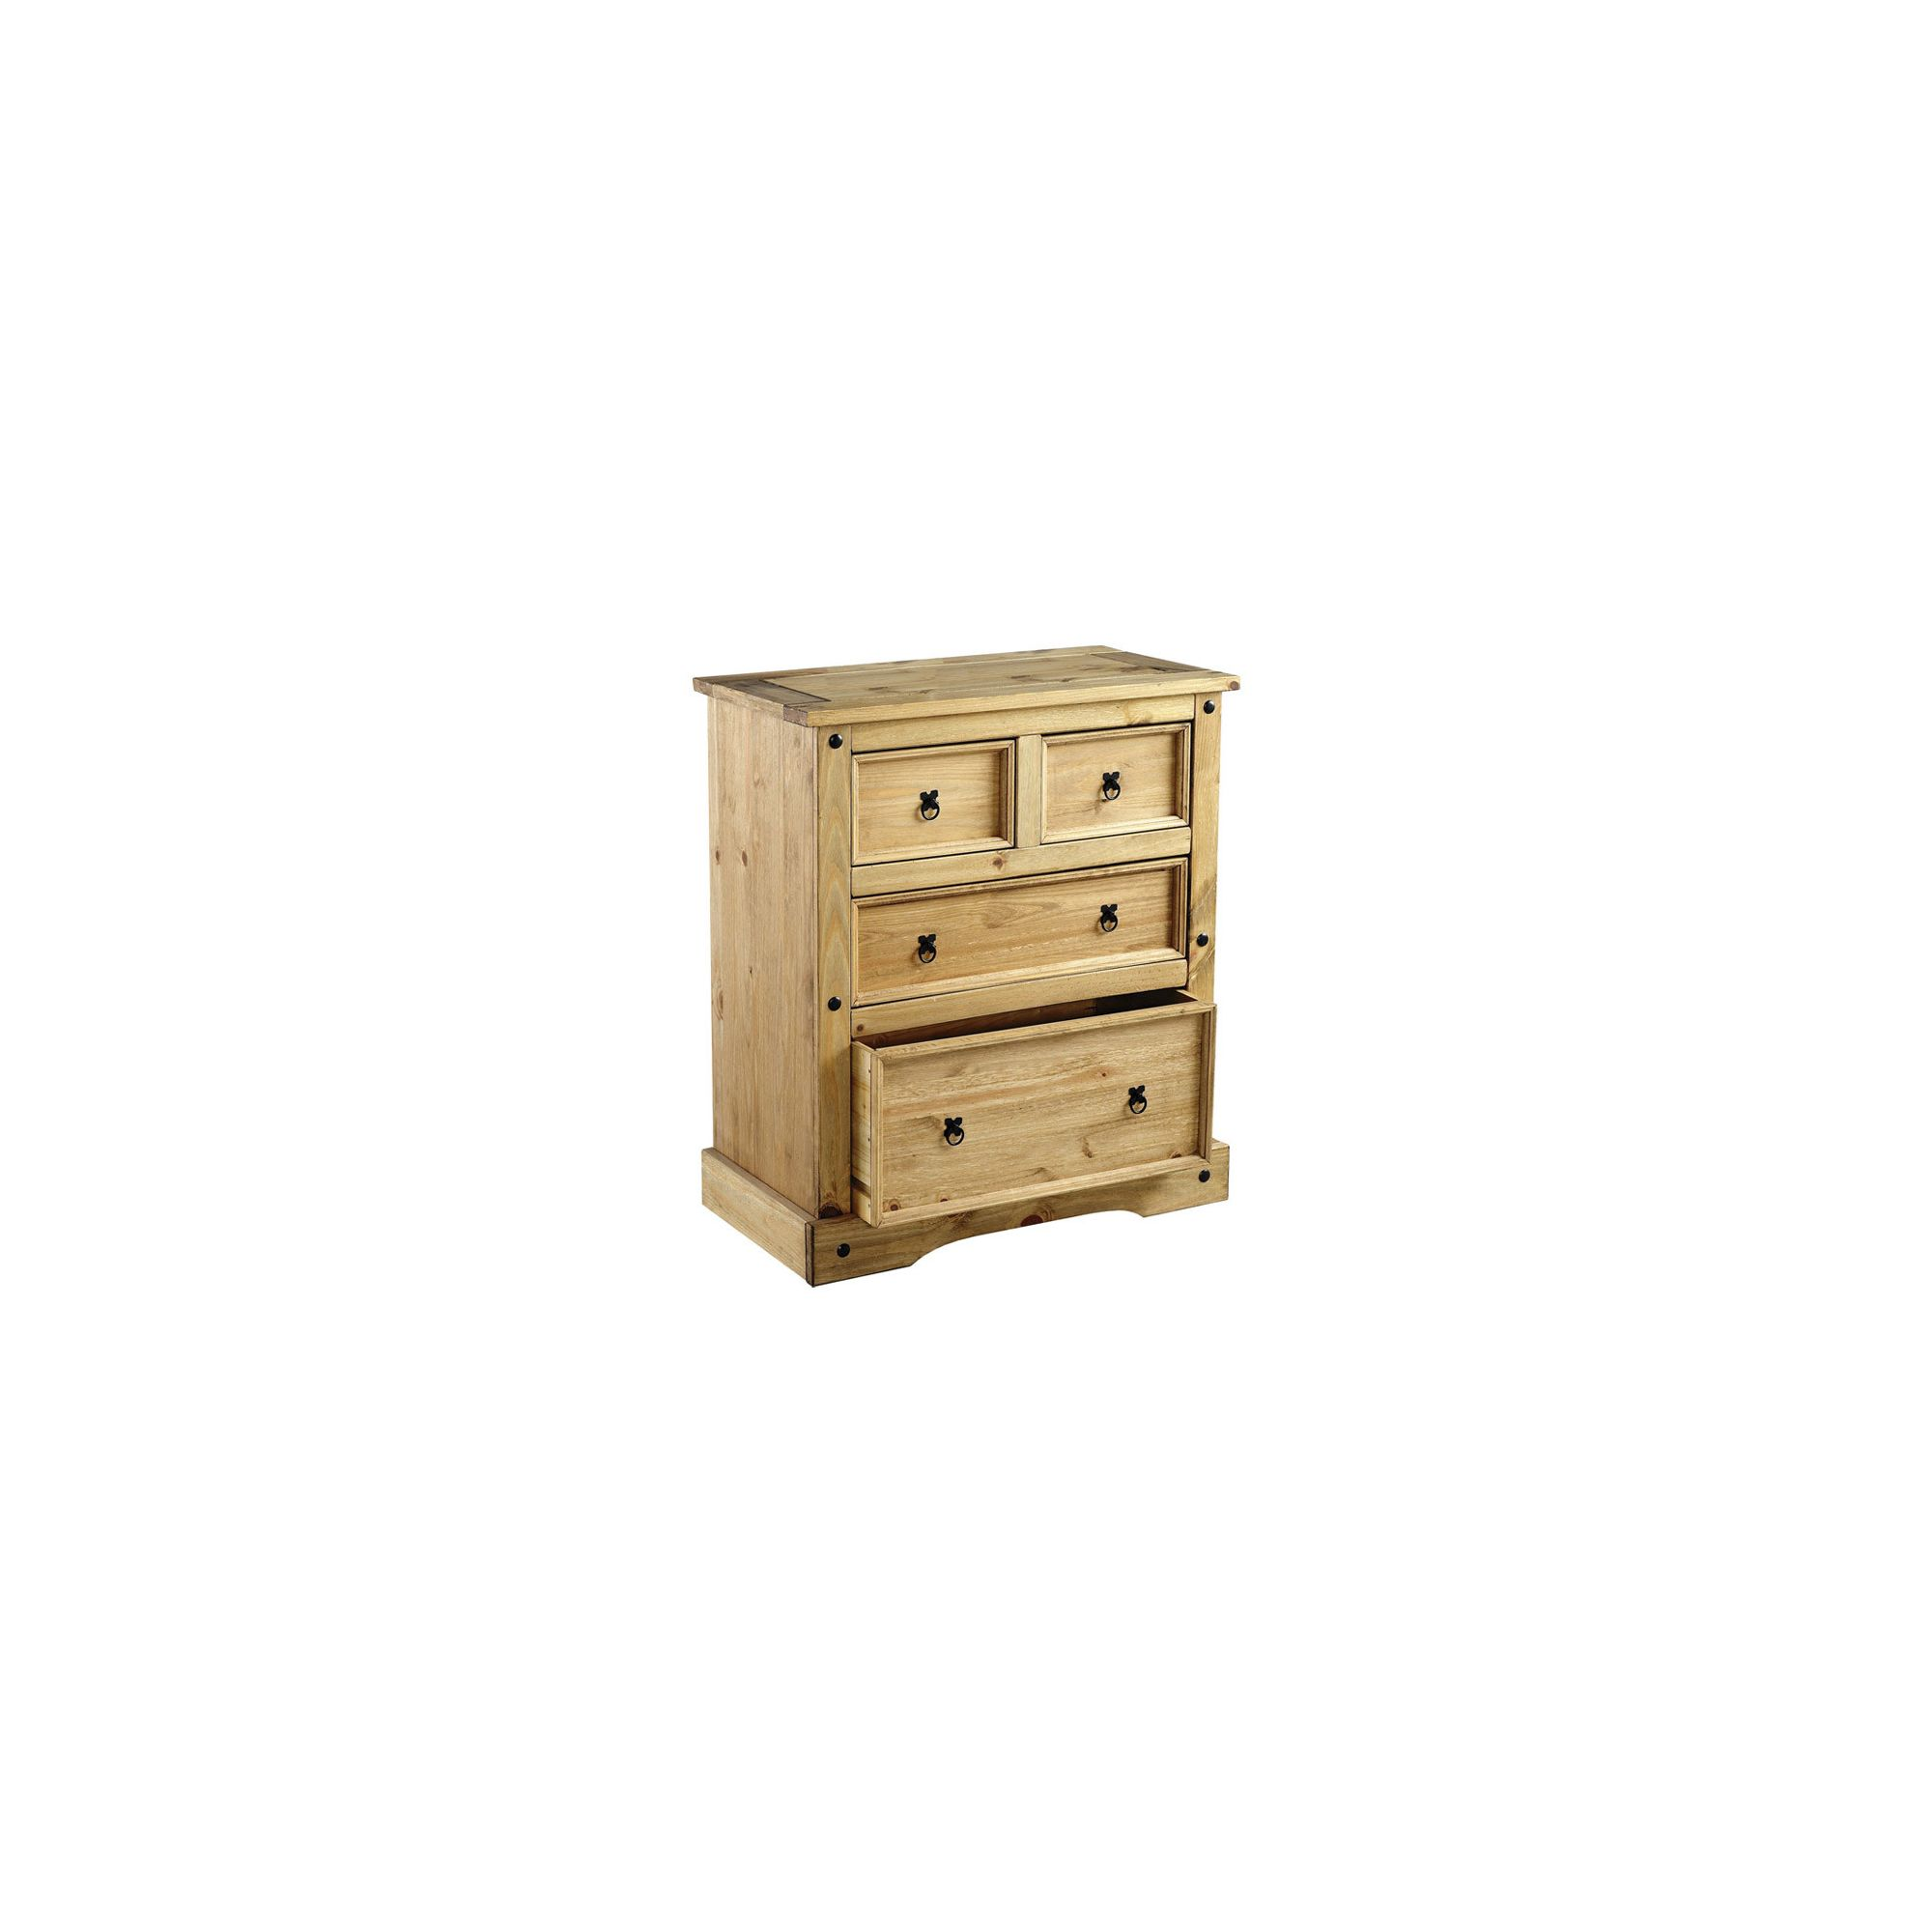 Home Essence Corona 2+2 Drawer Chest in Distressed Waxed Pine at Tesco Direct